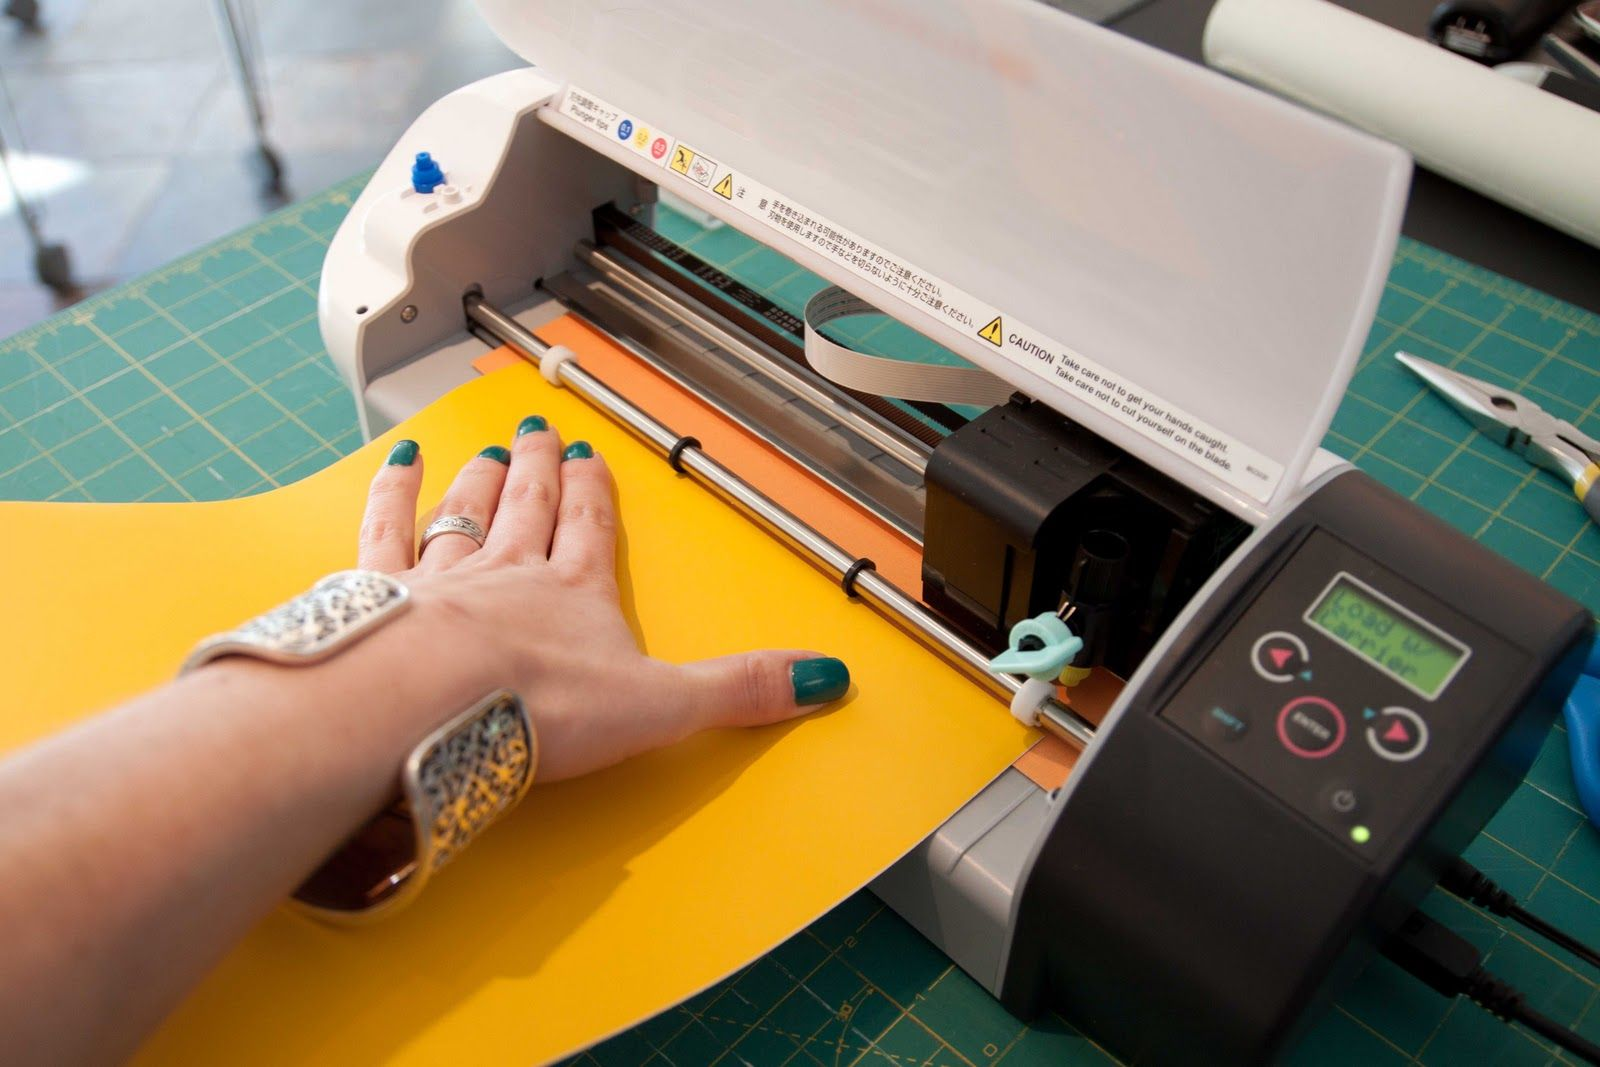 Best Vinyl Cutter Fabric Is Bliss Loading Vinyl Into The Silhouette Cutter